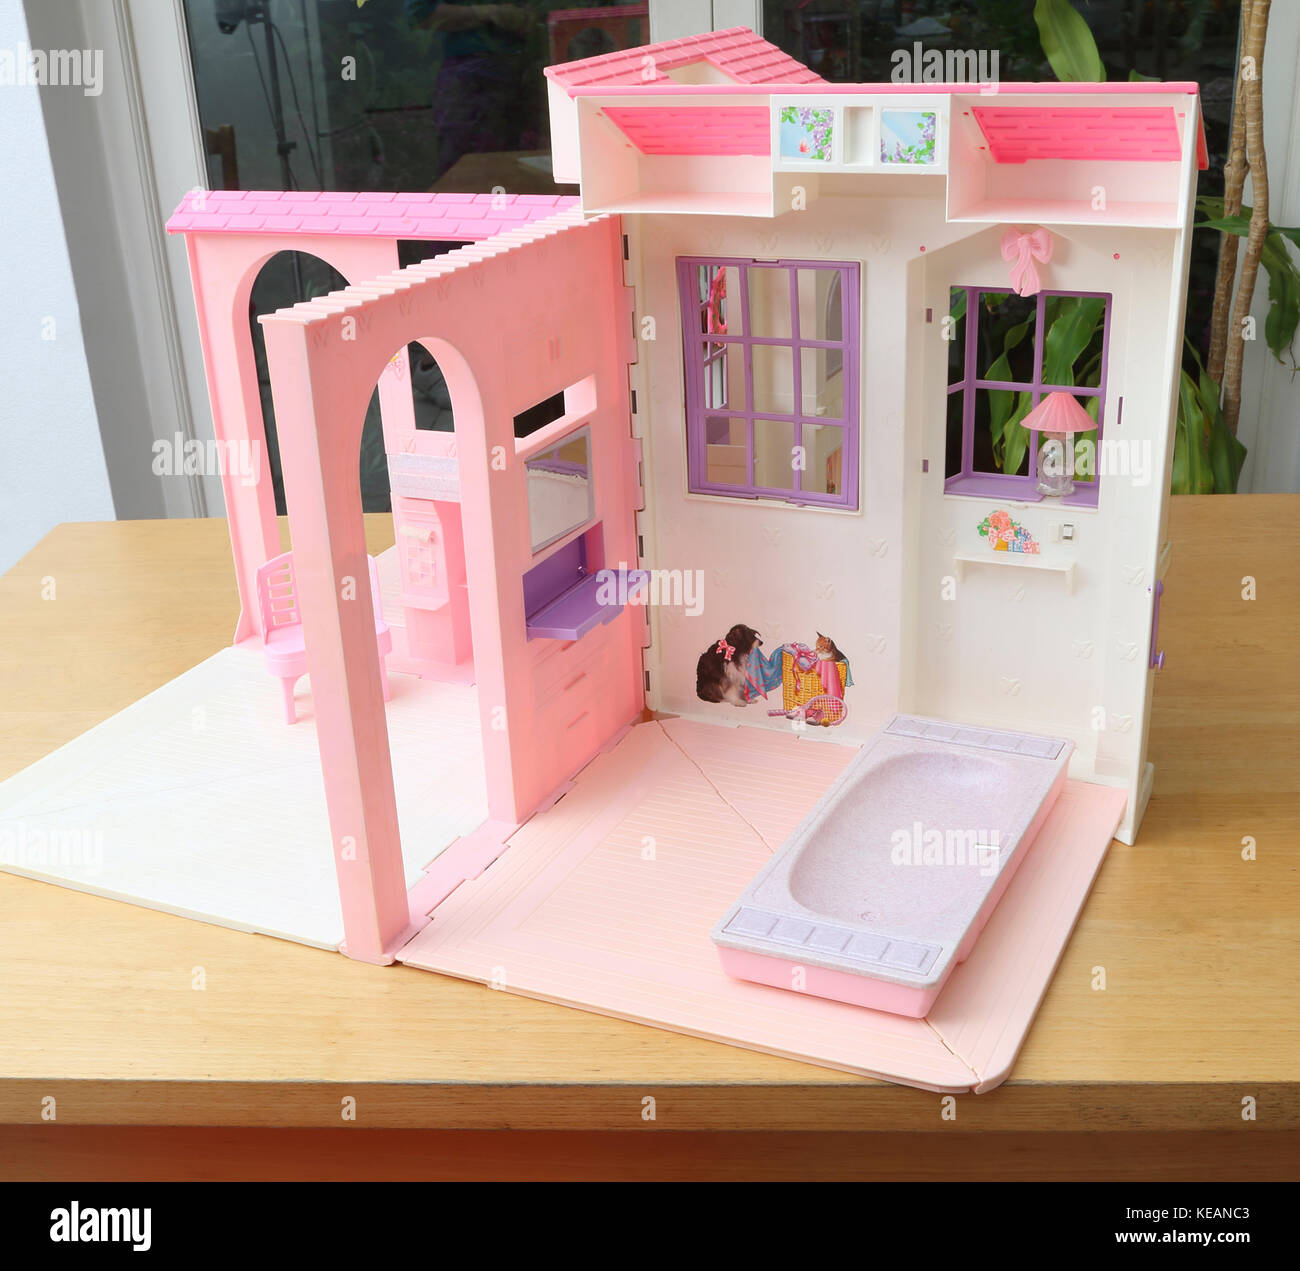 Vintage 1996 Barbie Folding Pretty House Showing